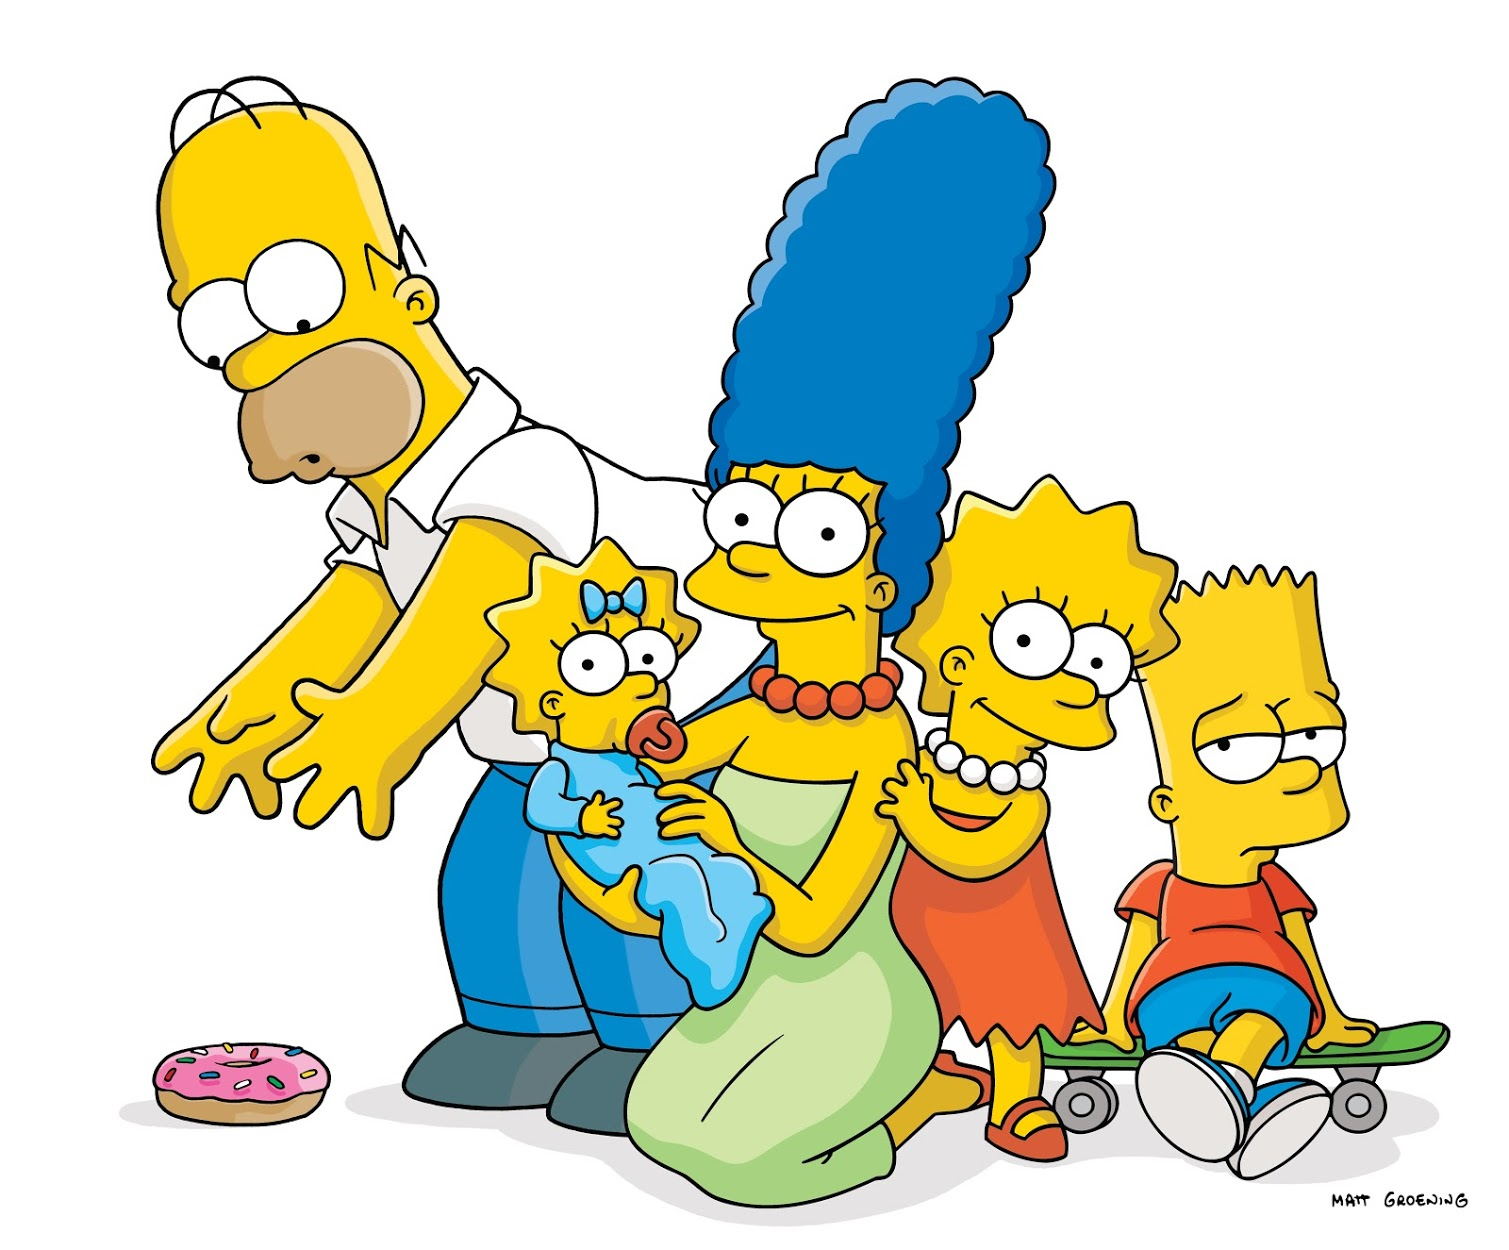 The Simpsons TM and © 2018 Twentieth Century Fox Film Corporation. All Rights Reserved.